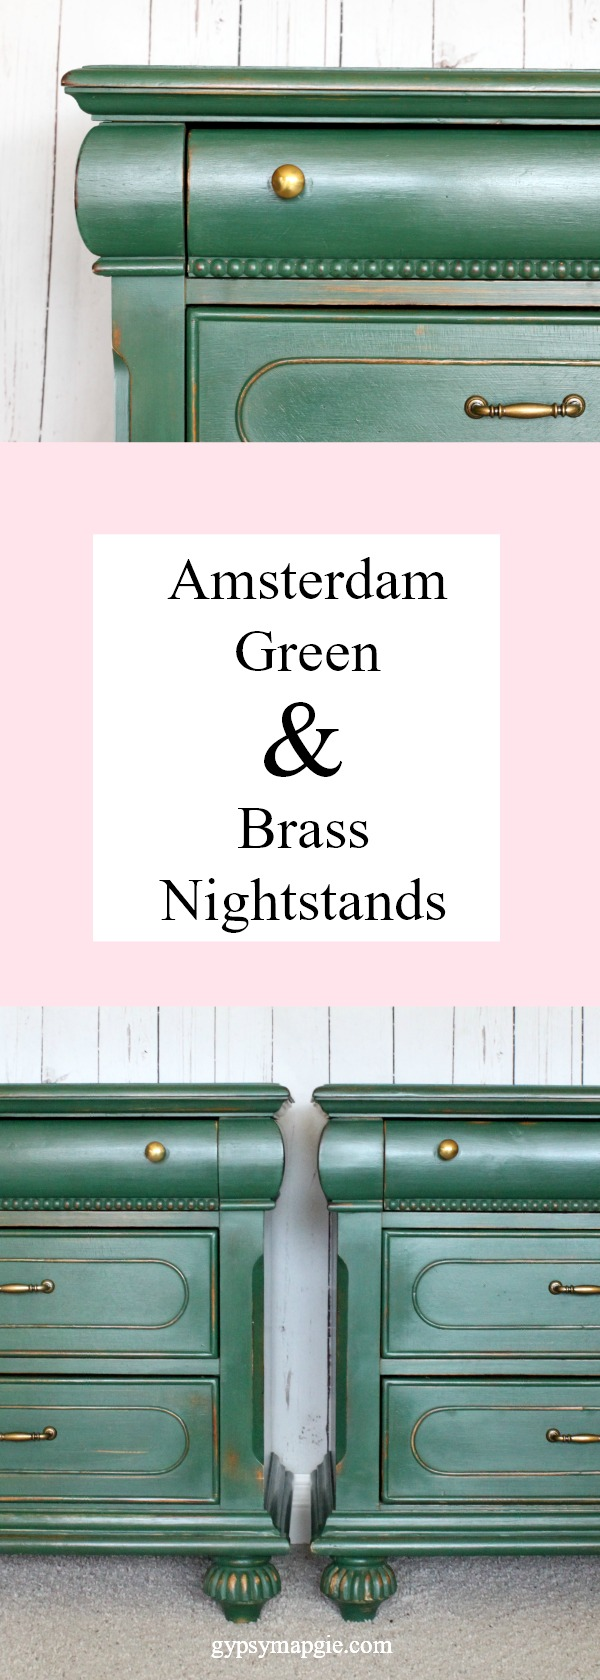 Amsterdam Green & Brass Nightstands | Gypsy Magpie